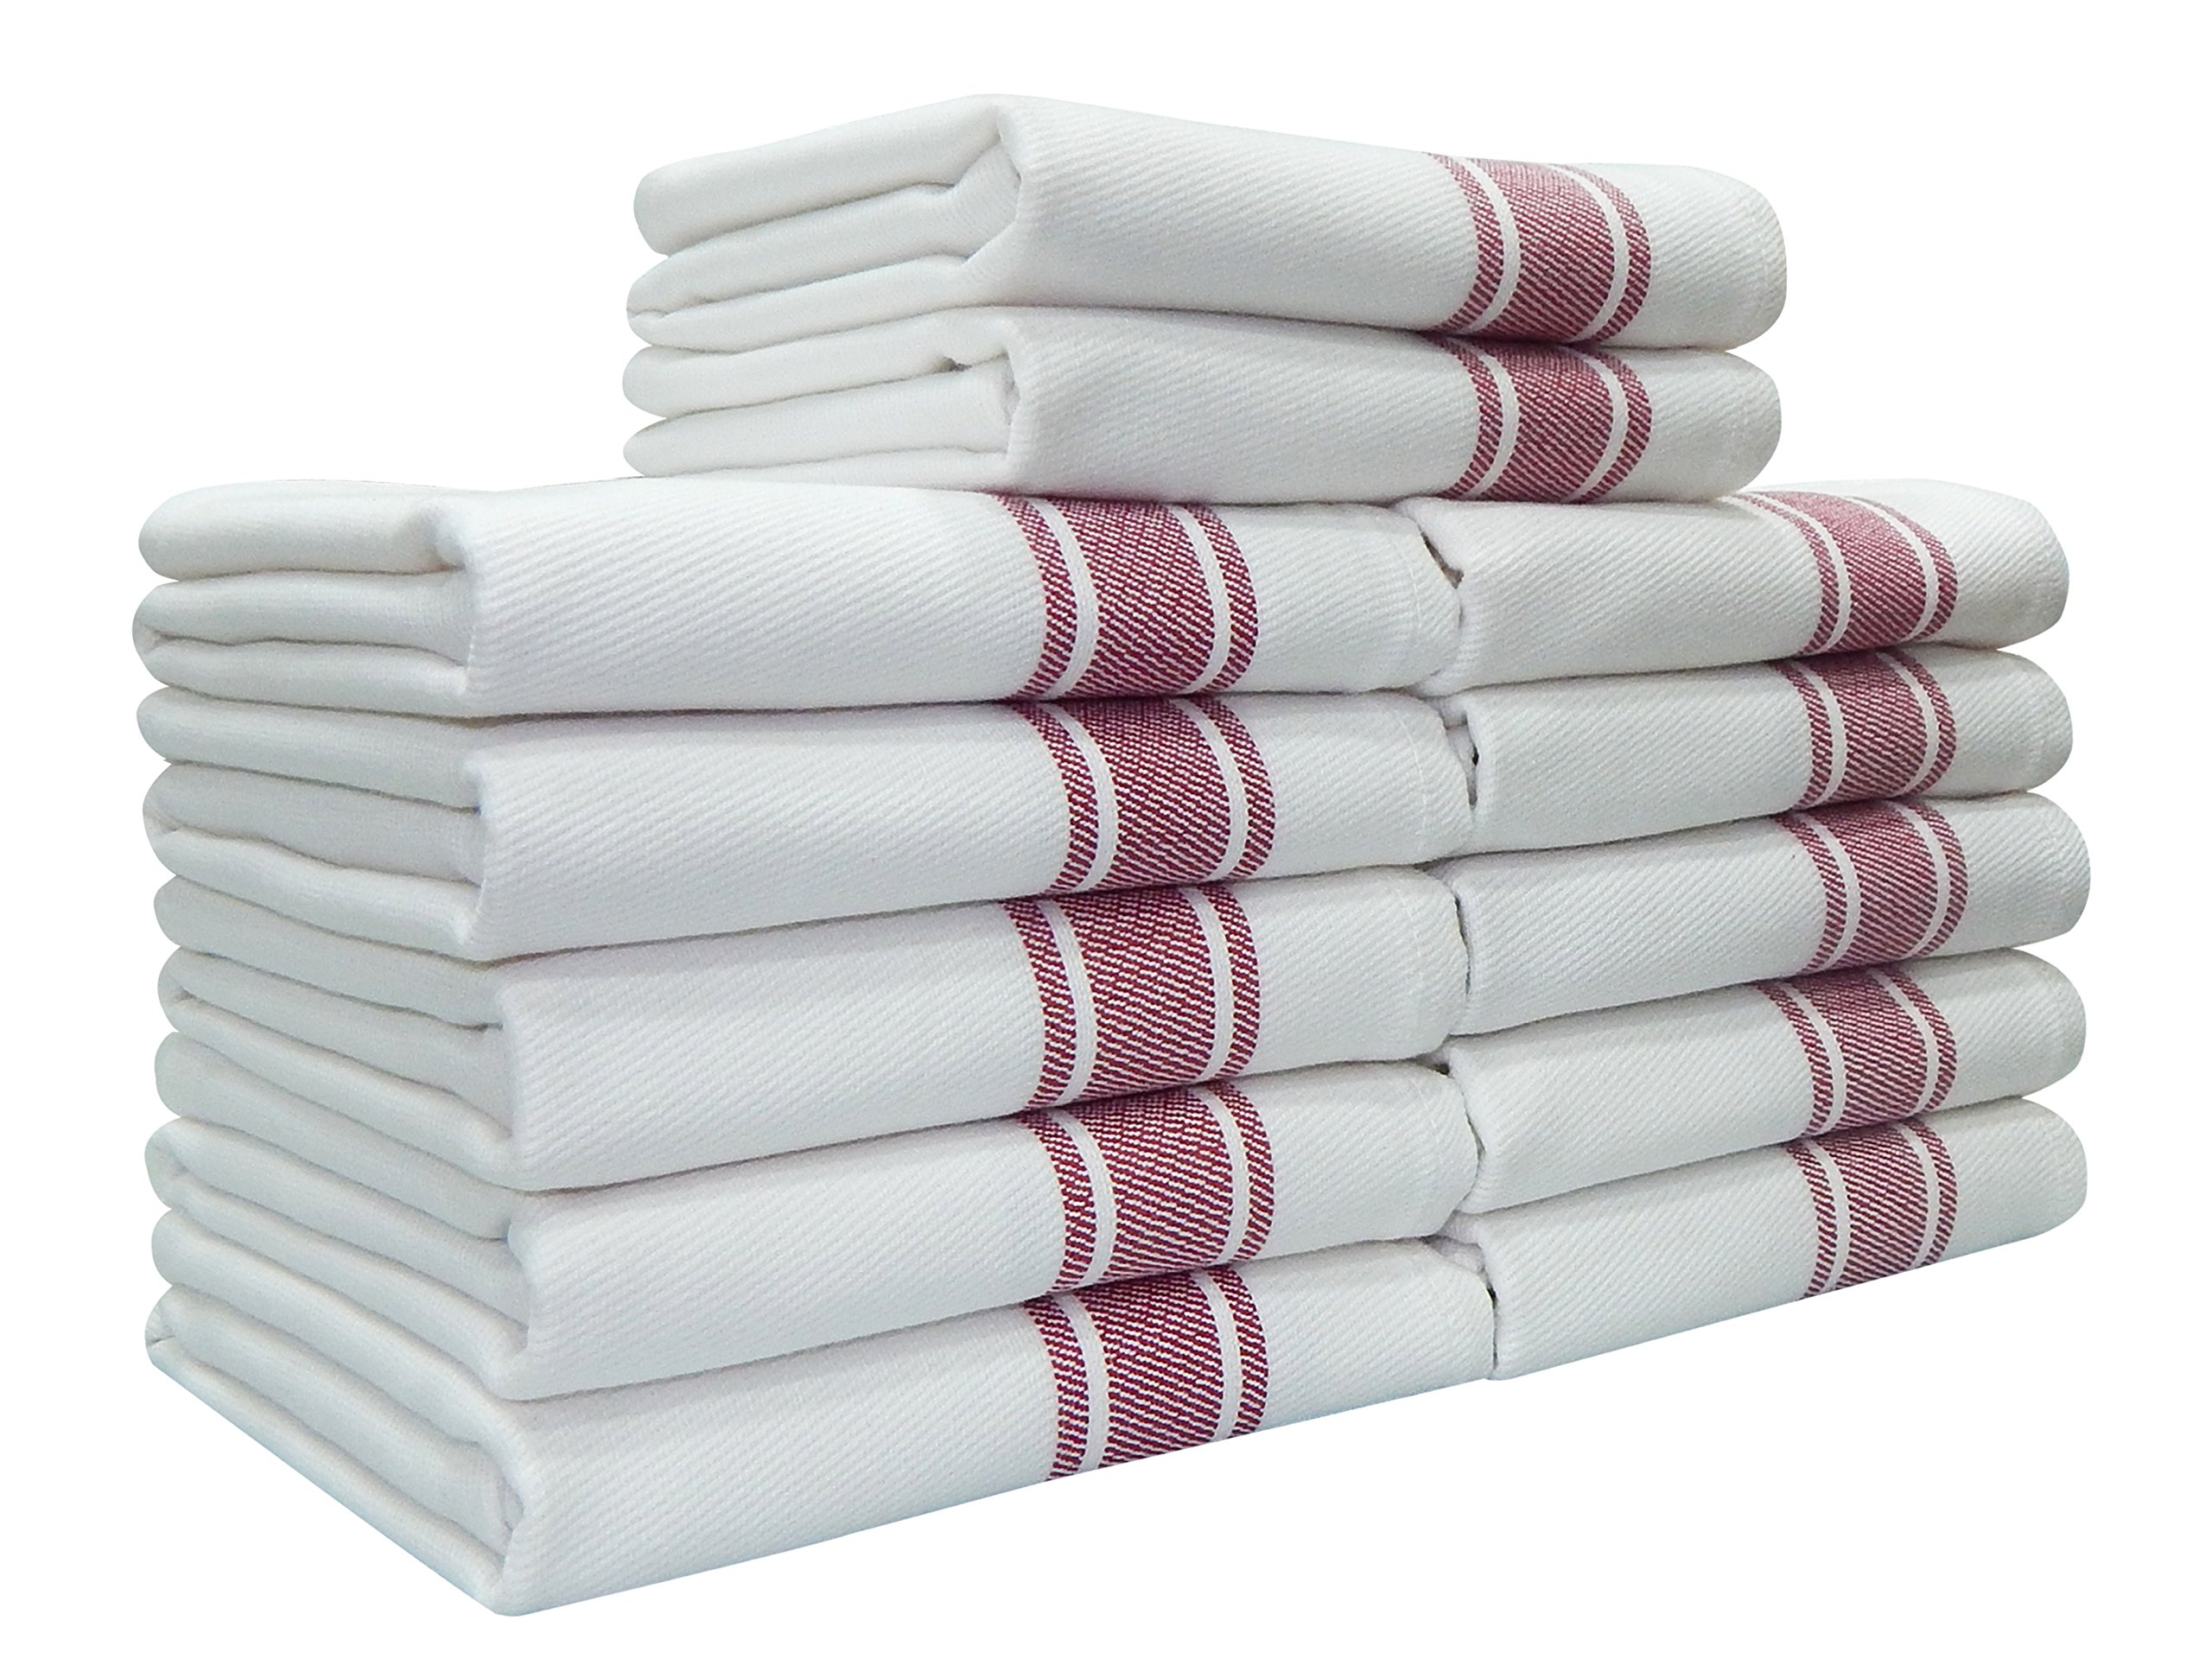 Kitchen Towels,100% Natural Cotton, 12 Pack, 27 x 17 inch, White with Red Stripe, Absorbent & Quick Dry Tea towels, Value Pack of Dish Cloth Towels by Tiny Break